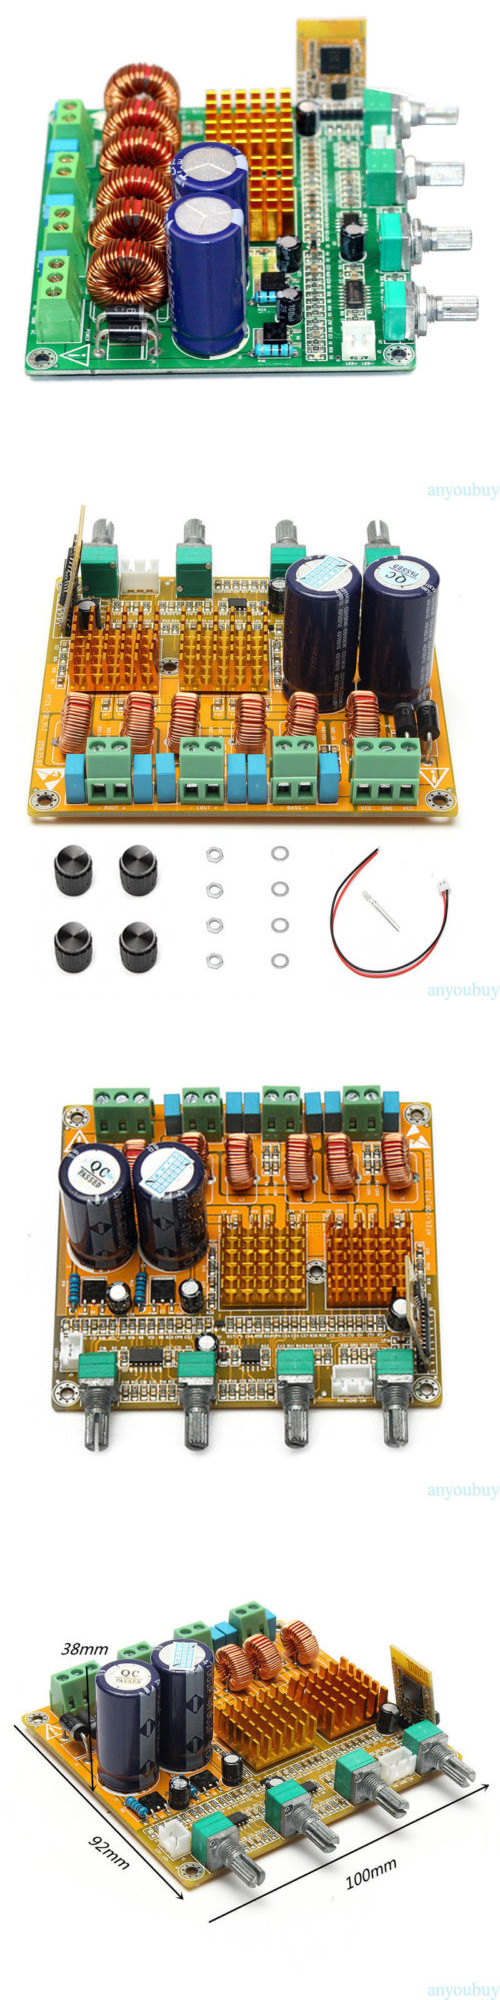 Amplifier Parts And Components Bluetooth 21 3 Channel Class D 2x50w Stereo Audio Power Circuit Board Ebay Finished Replacement